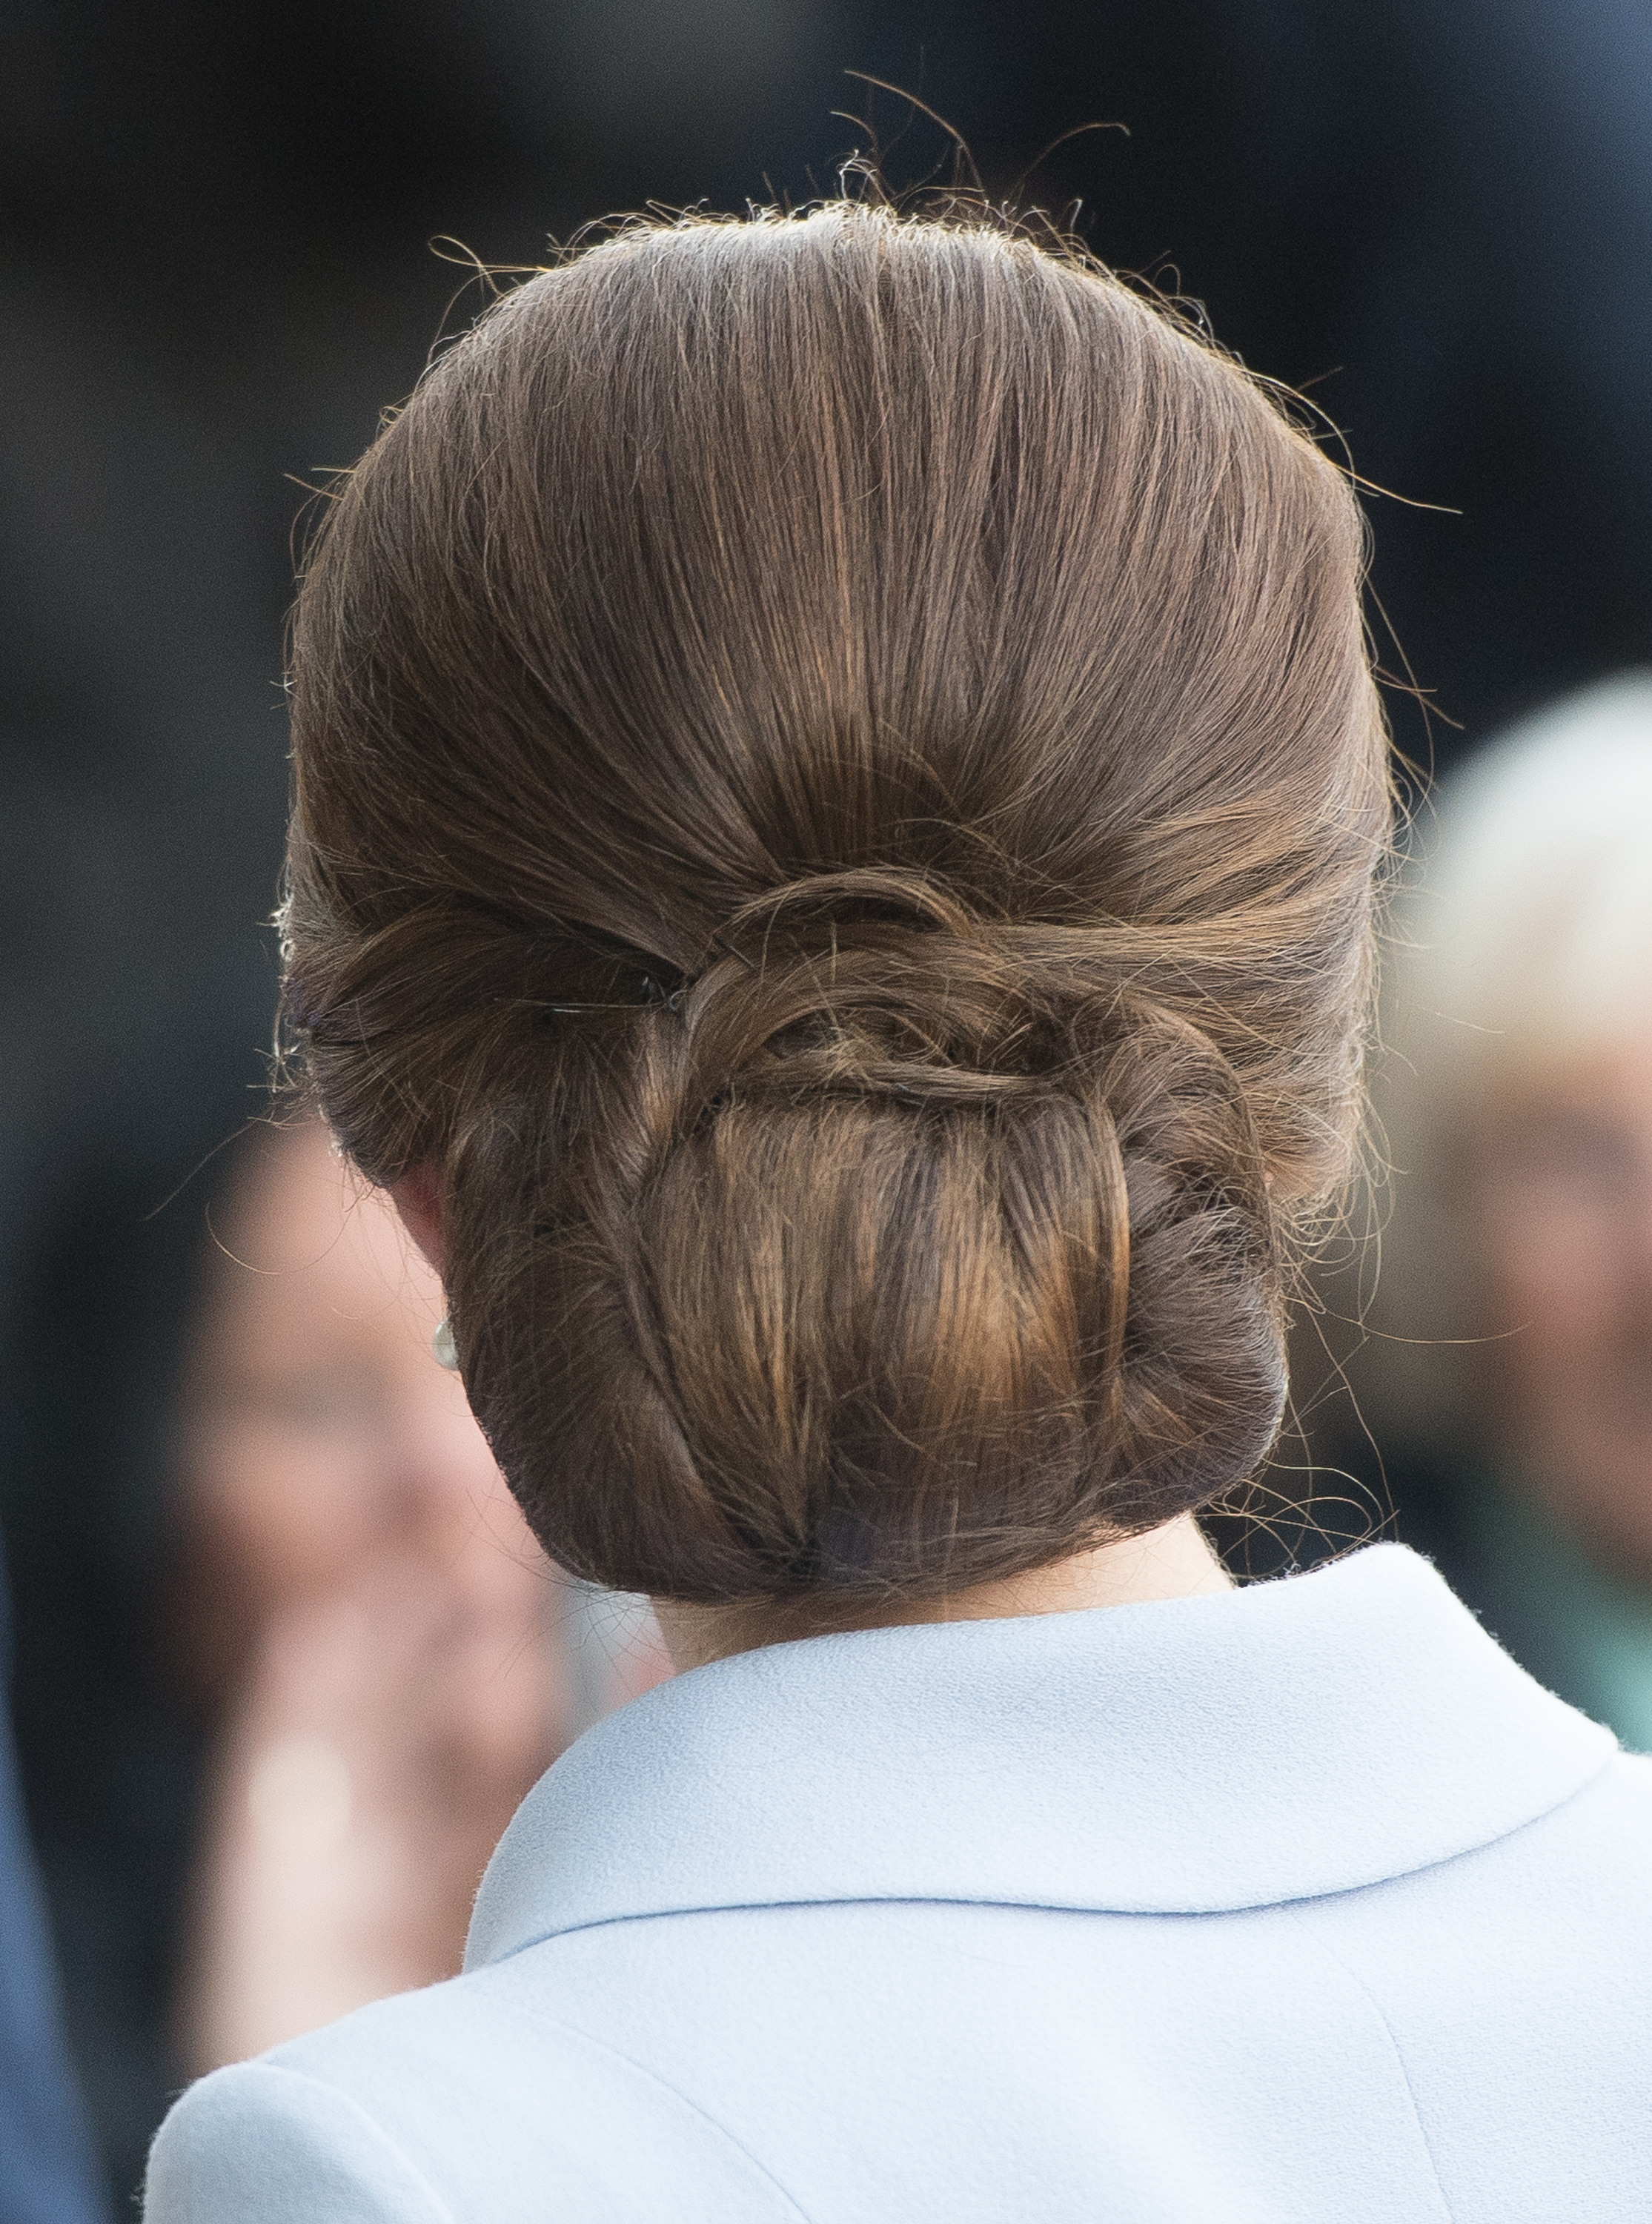 Turns out Kate Middleton wears hairnets to keep her updos in place